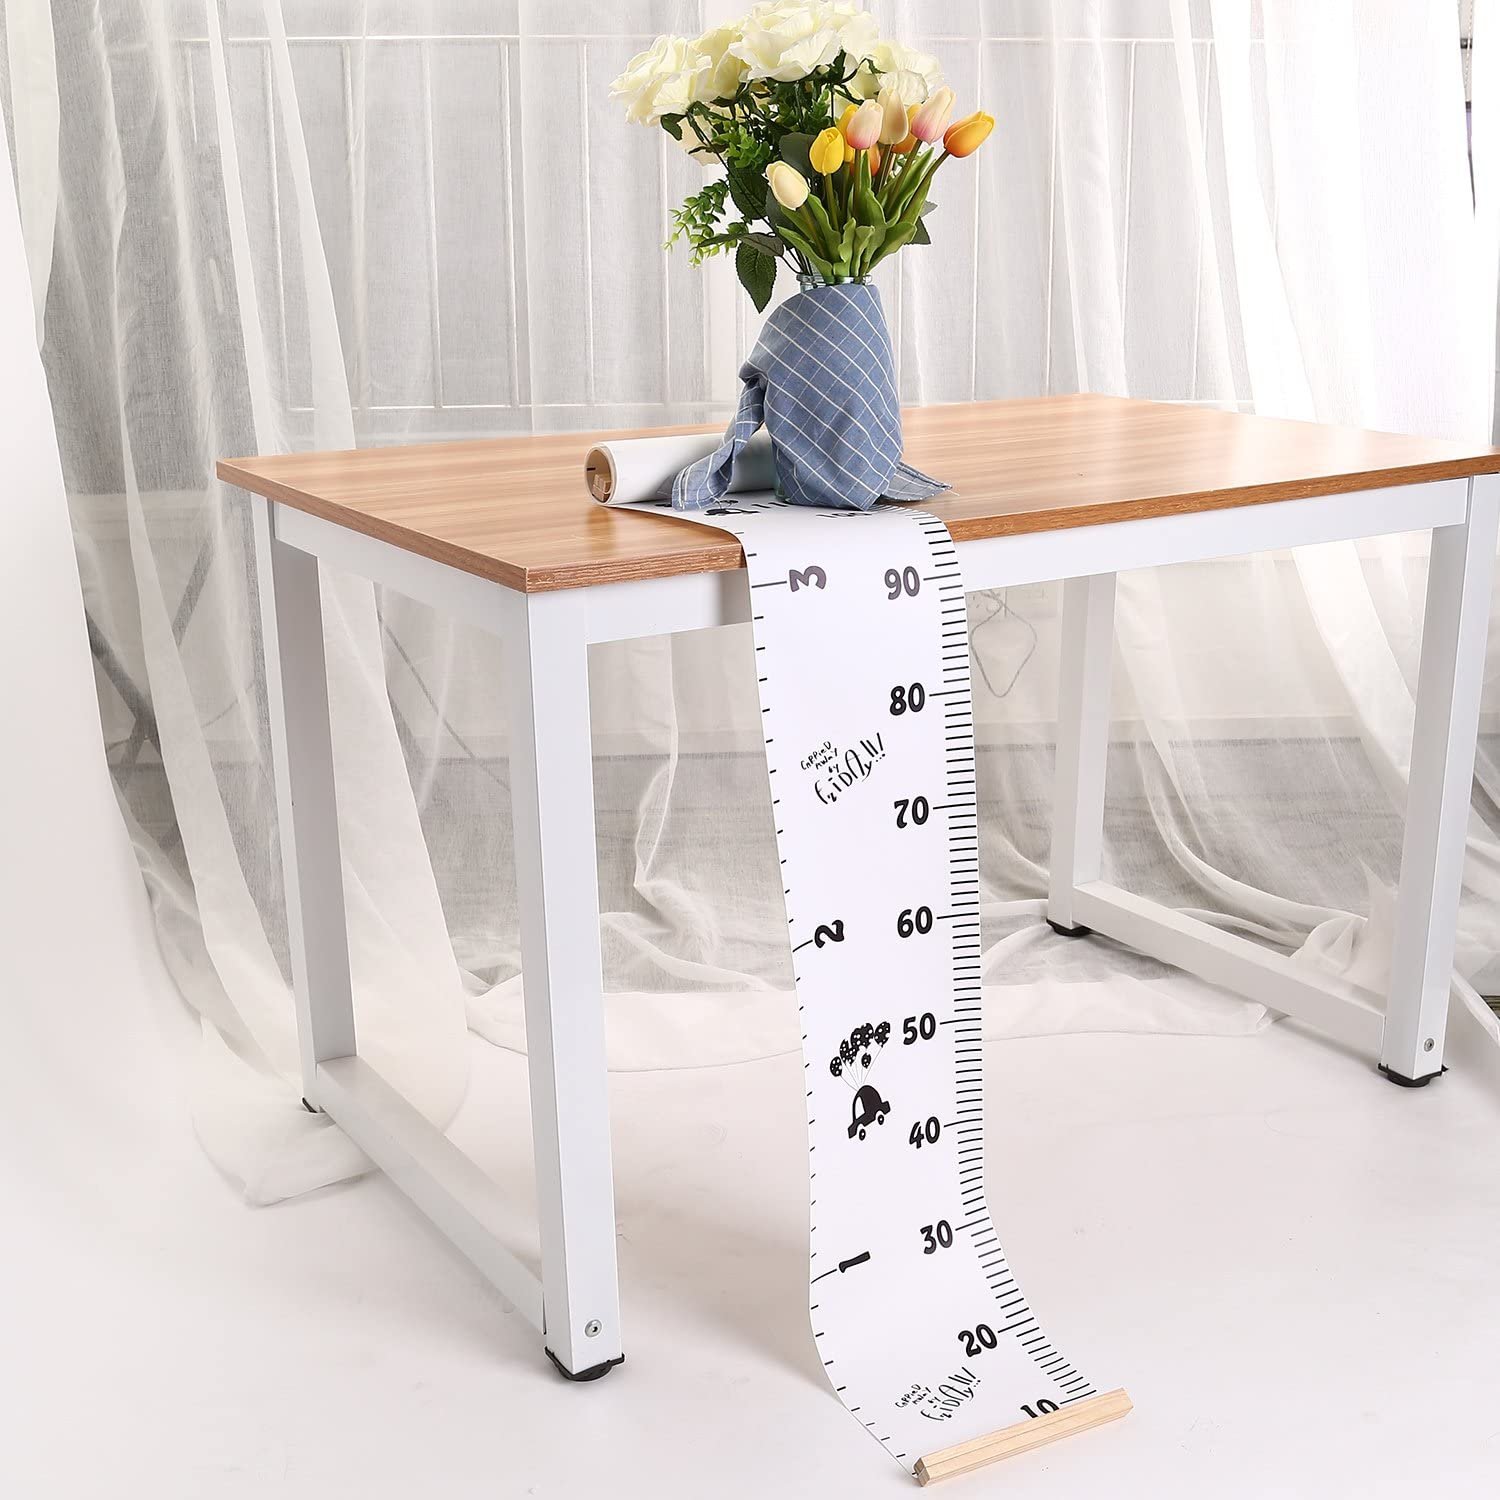 TKSTAR Removable Growth Chart Handing Ruler Wall Decor for Kids Wood Frame Height Measurement Rulers JU-BR04 A